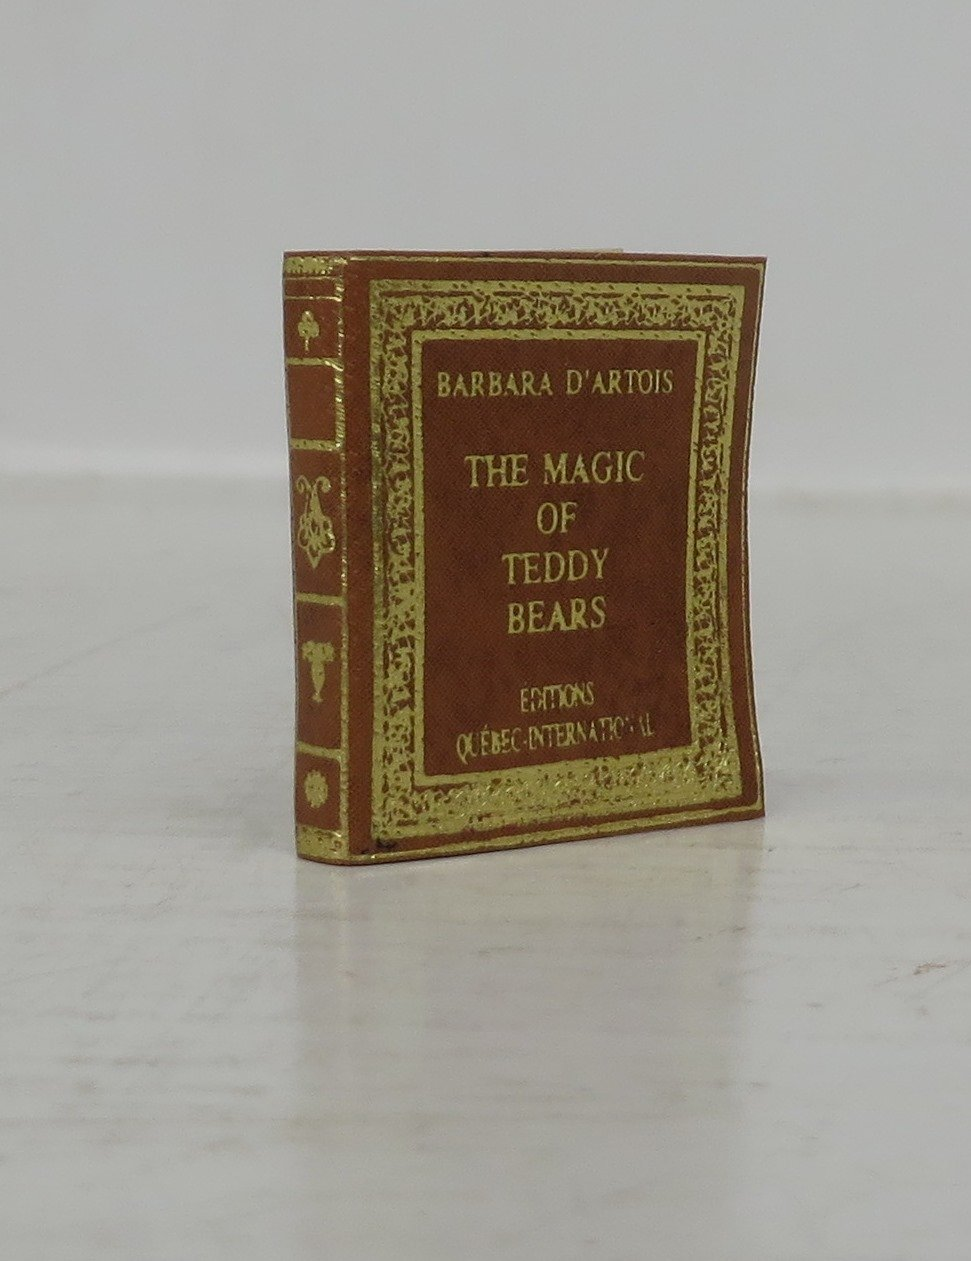 The Magic of Teddy Bears (Miniature Book)